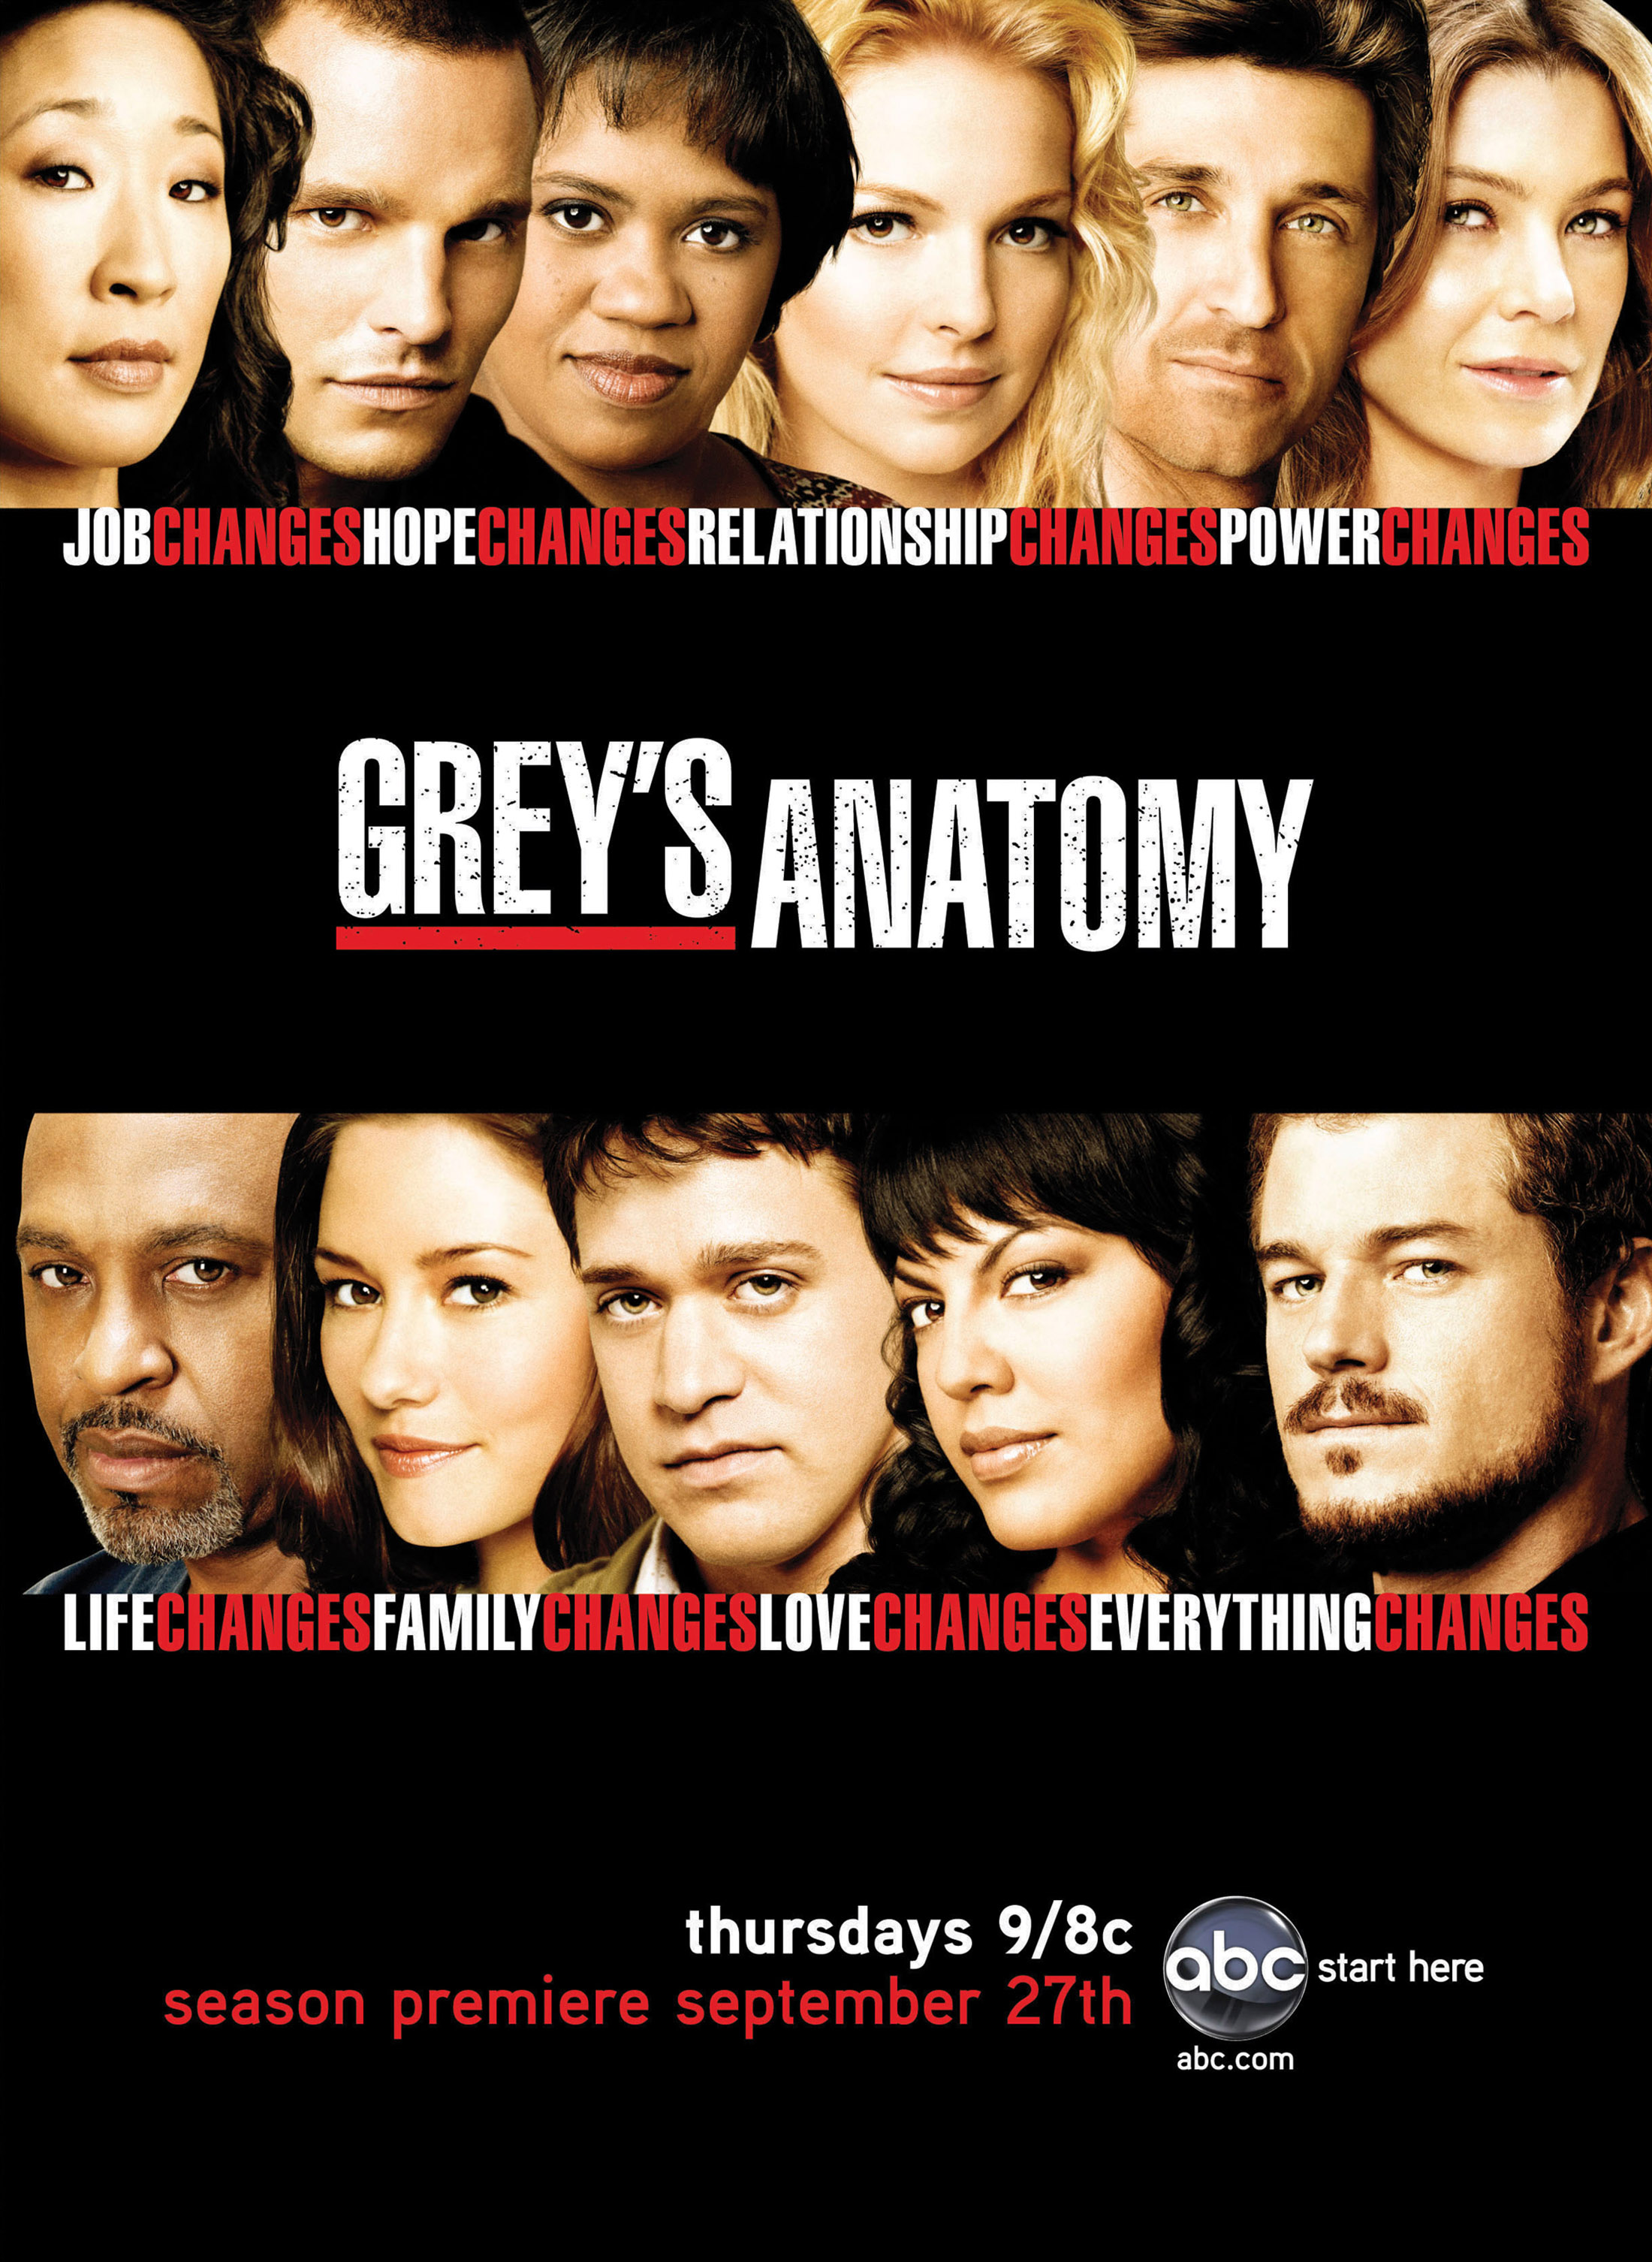 Greys-Anatomy-S04-1-dvdbash | DVDbash